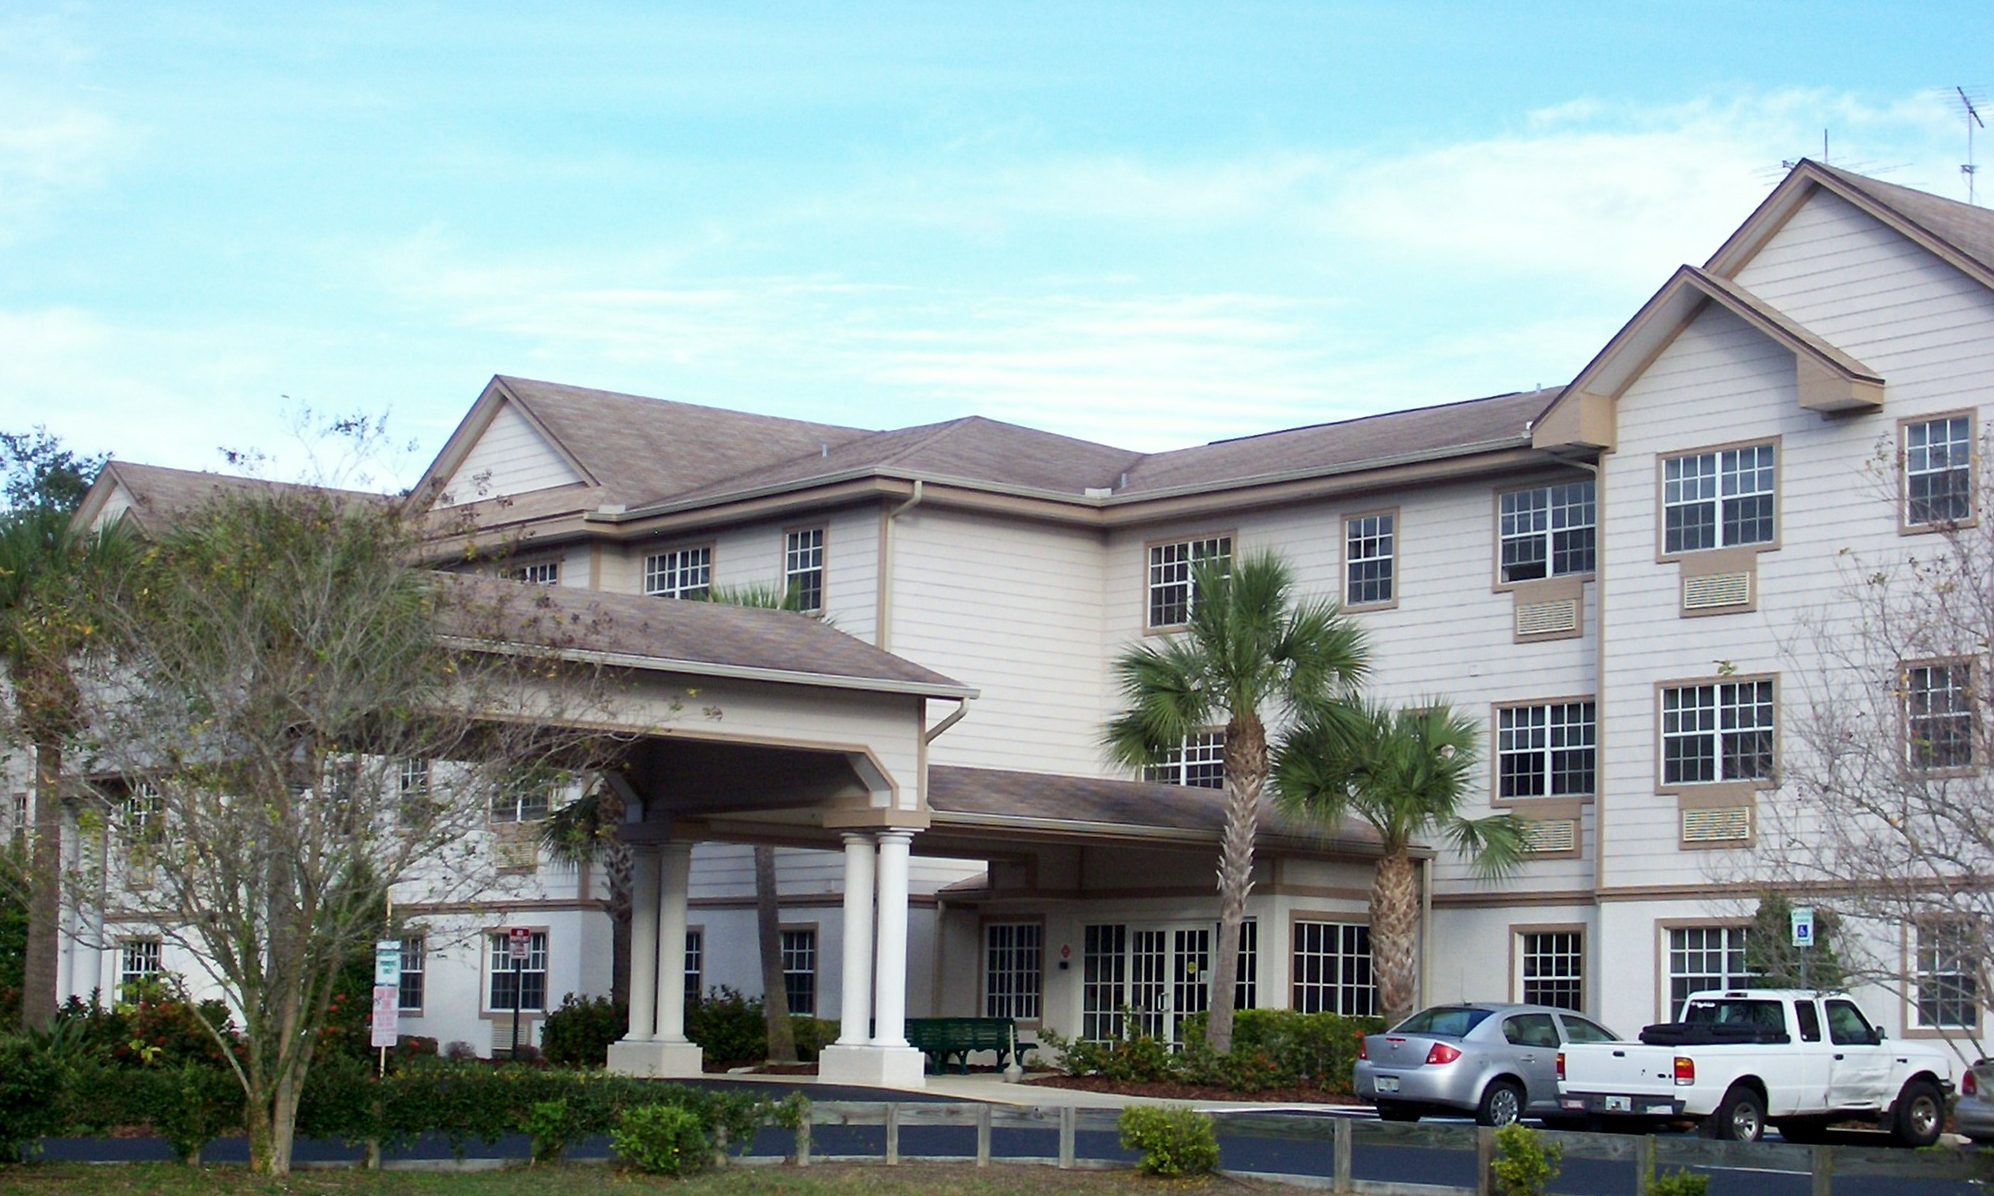 AHEPA 489 Senior Apartments - 6625 Rowan RoadNew Port Richey, FL 34653(727) 843-0636 TTY: (800) 955-8771 or 711 (English)TTY: (877) 955-8773 or 711 (Español)info@ahepahousing.org